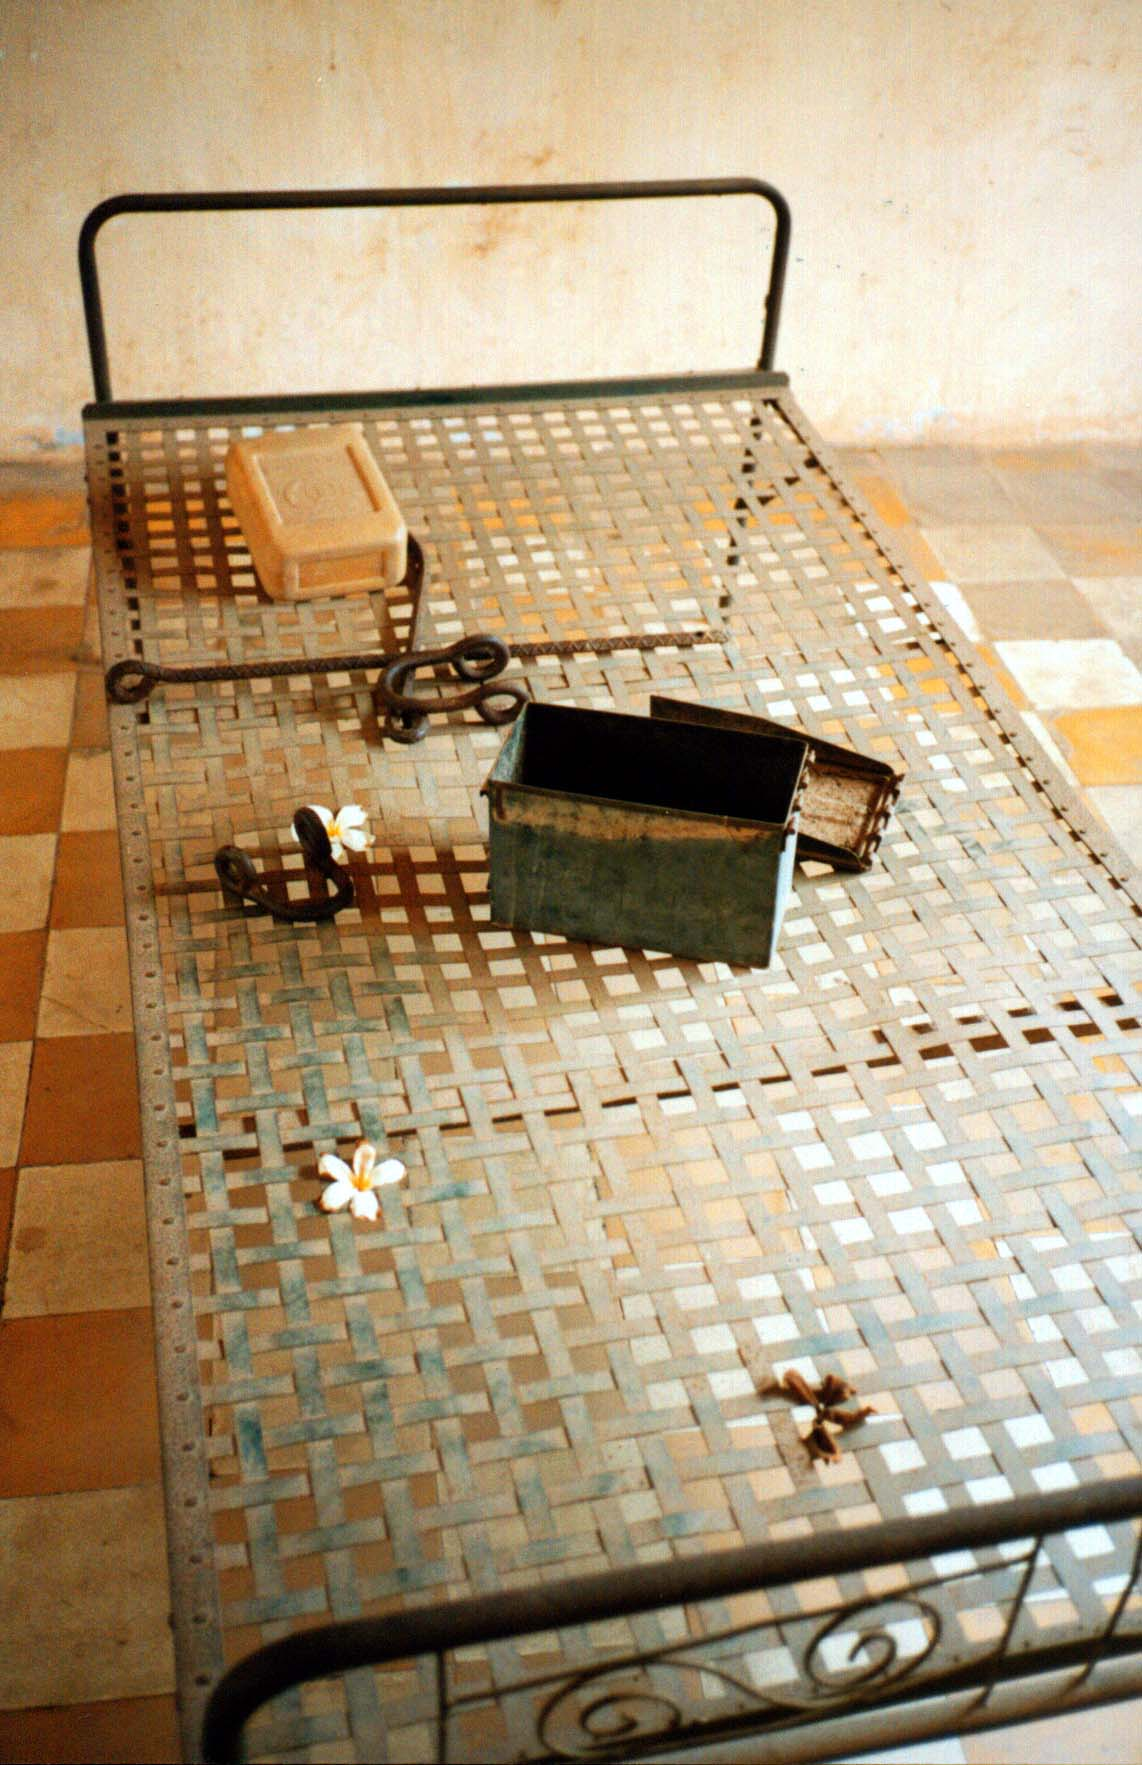 At S-21, a bed once used for torture now has flowers scattered on it (Phnom Penh, Cambodia) - Page 170